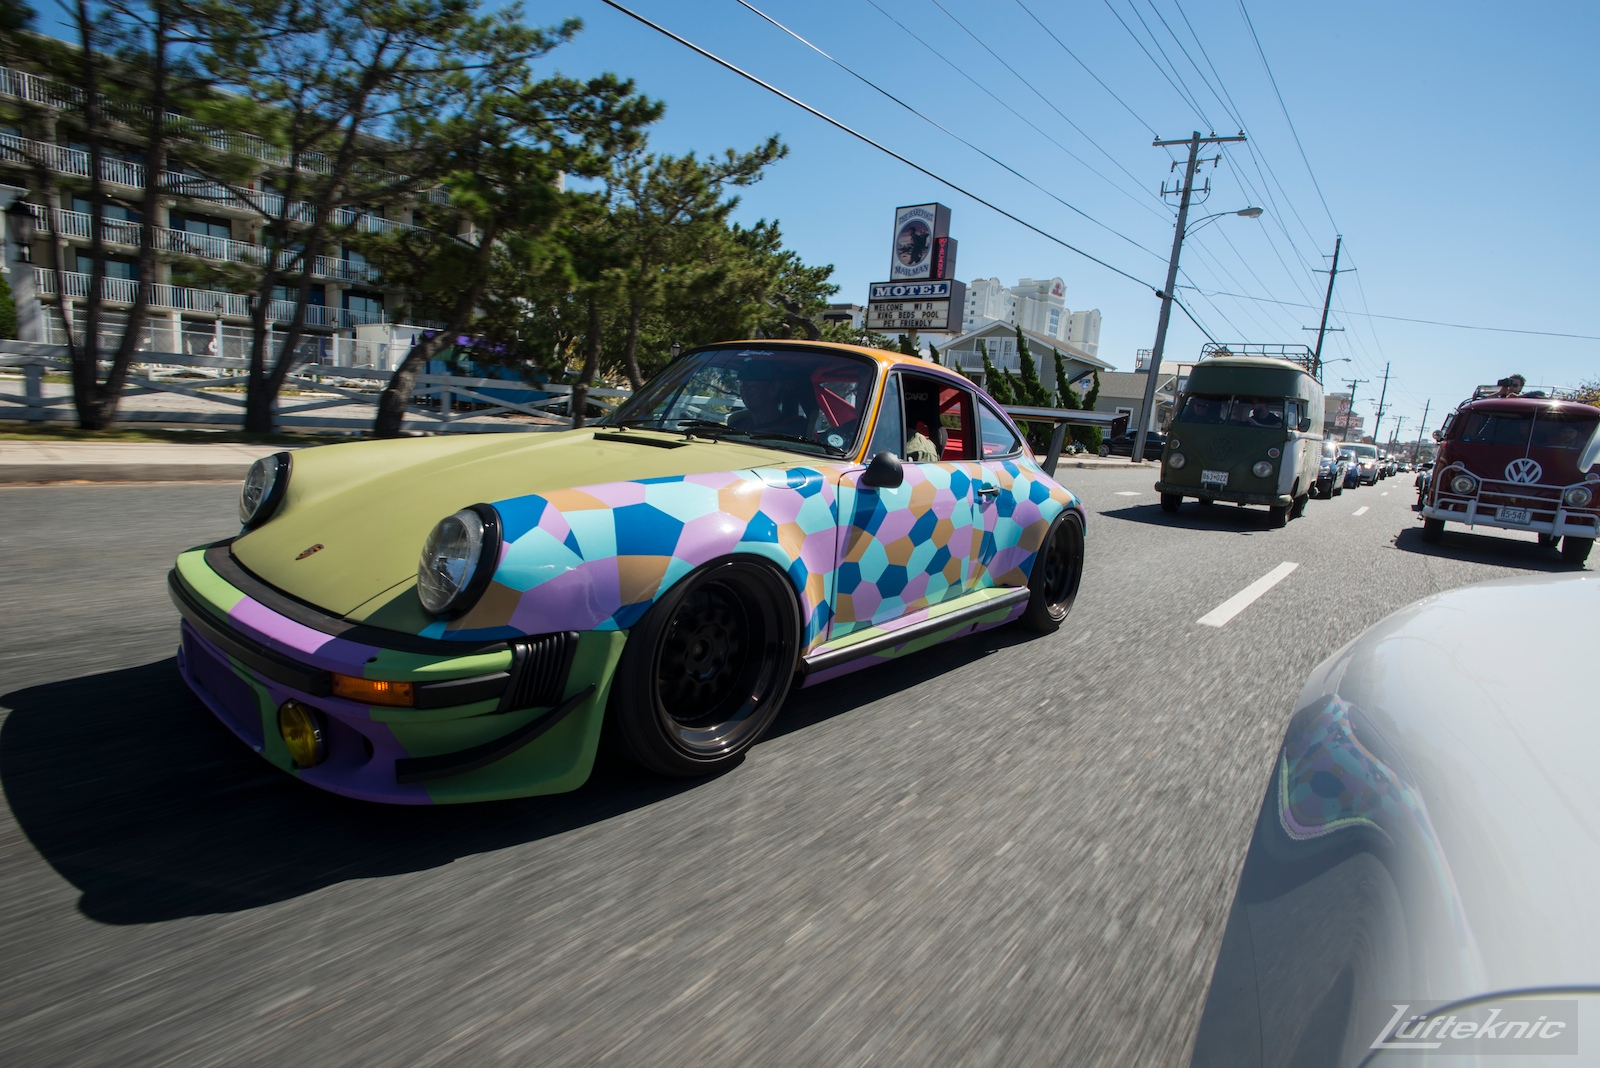 Lüfteknic #projectstuka Porsche 930 Turbo driving down the street with vintage vw buses.